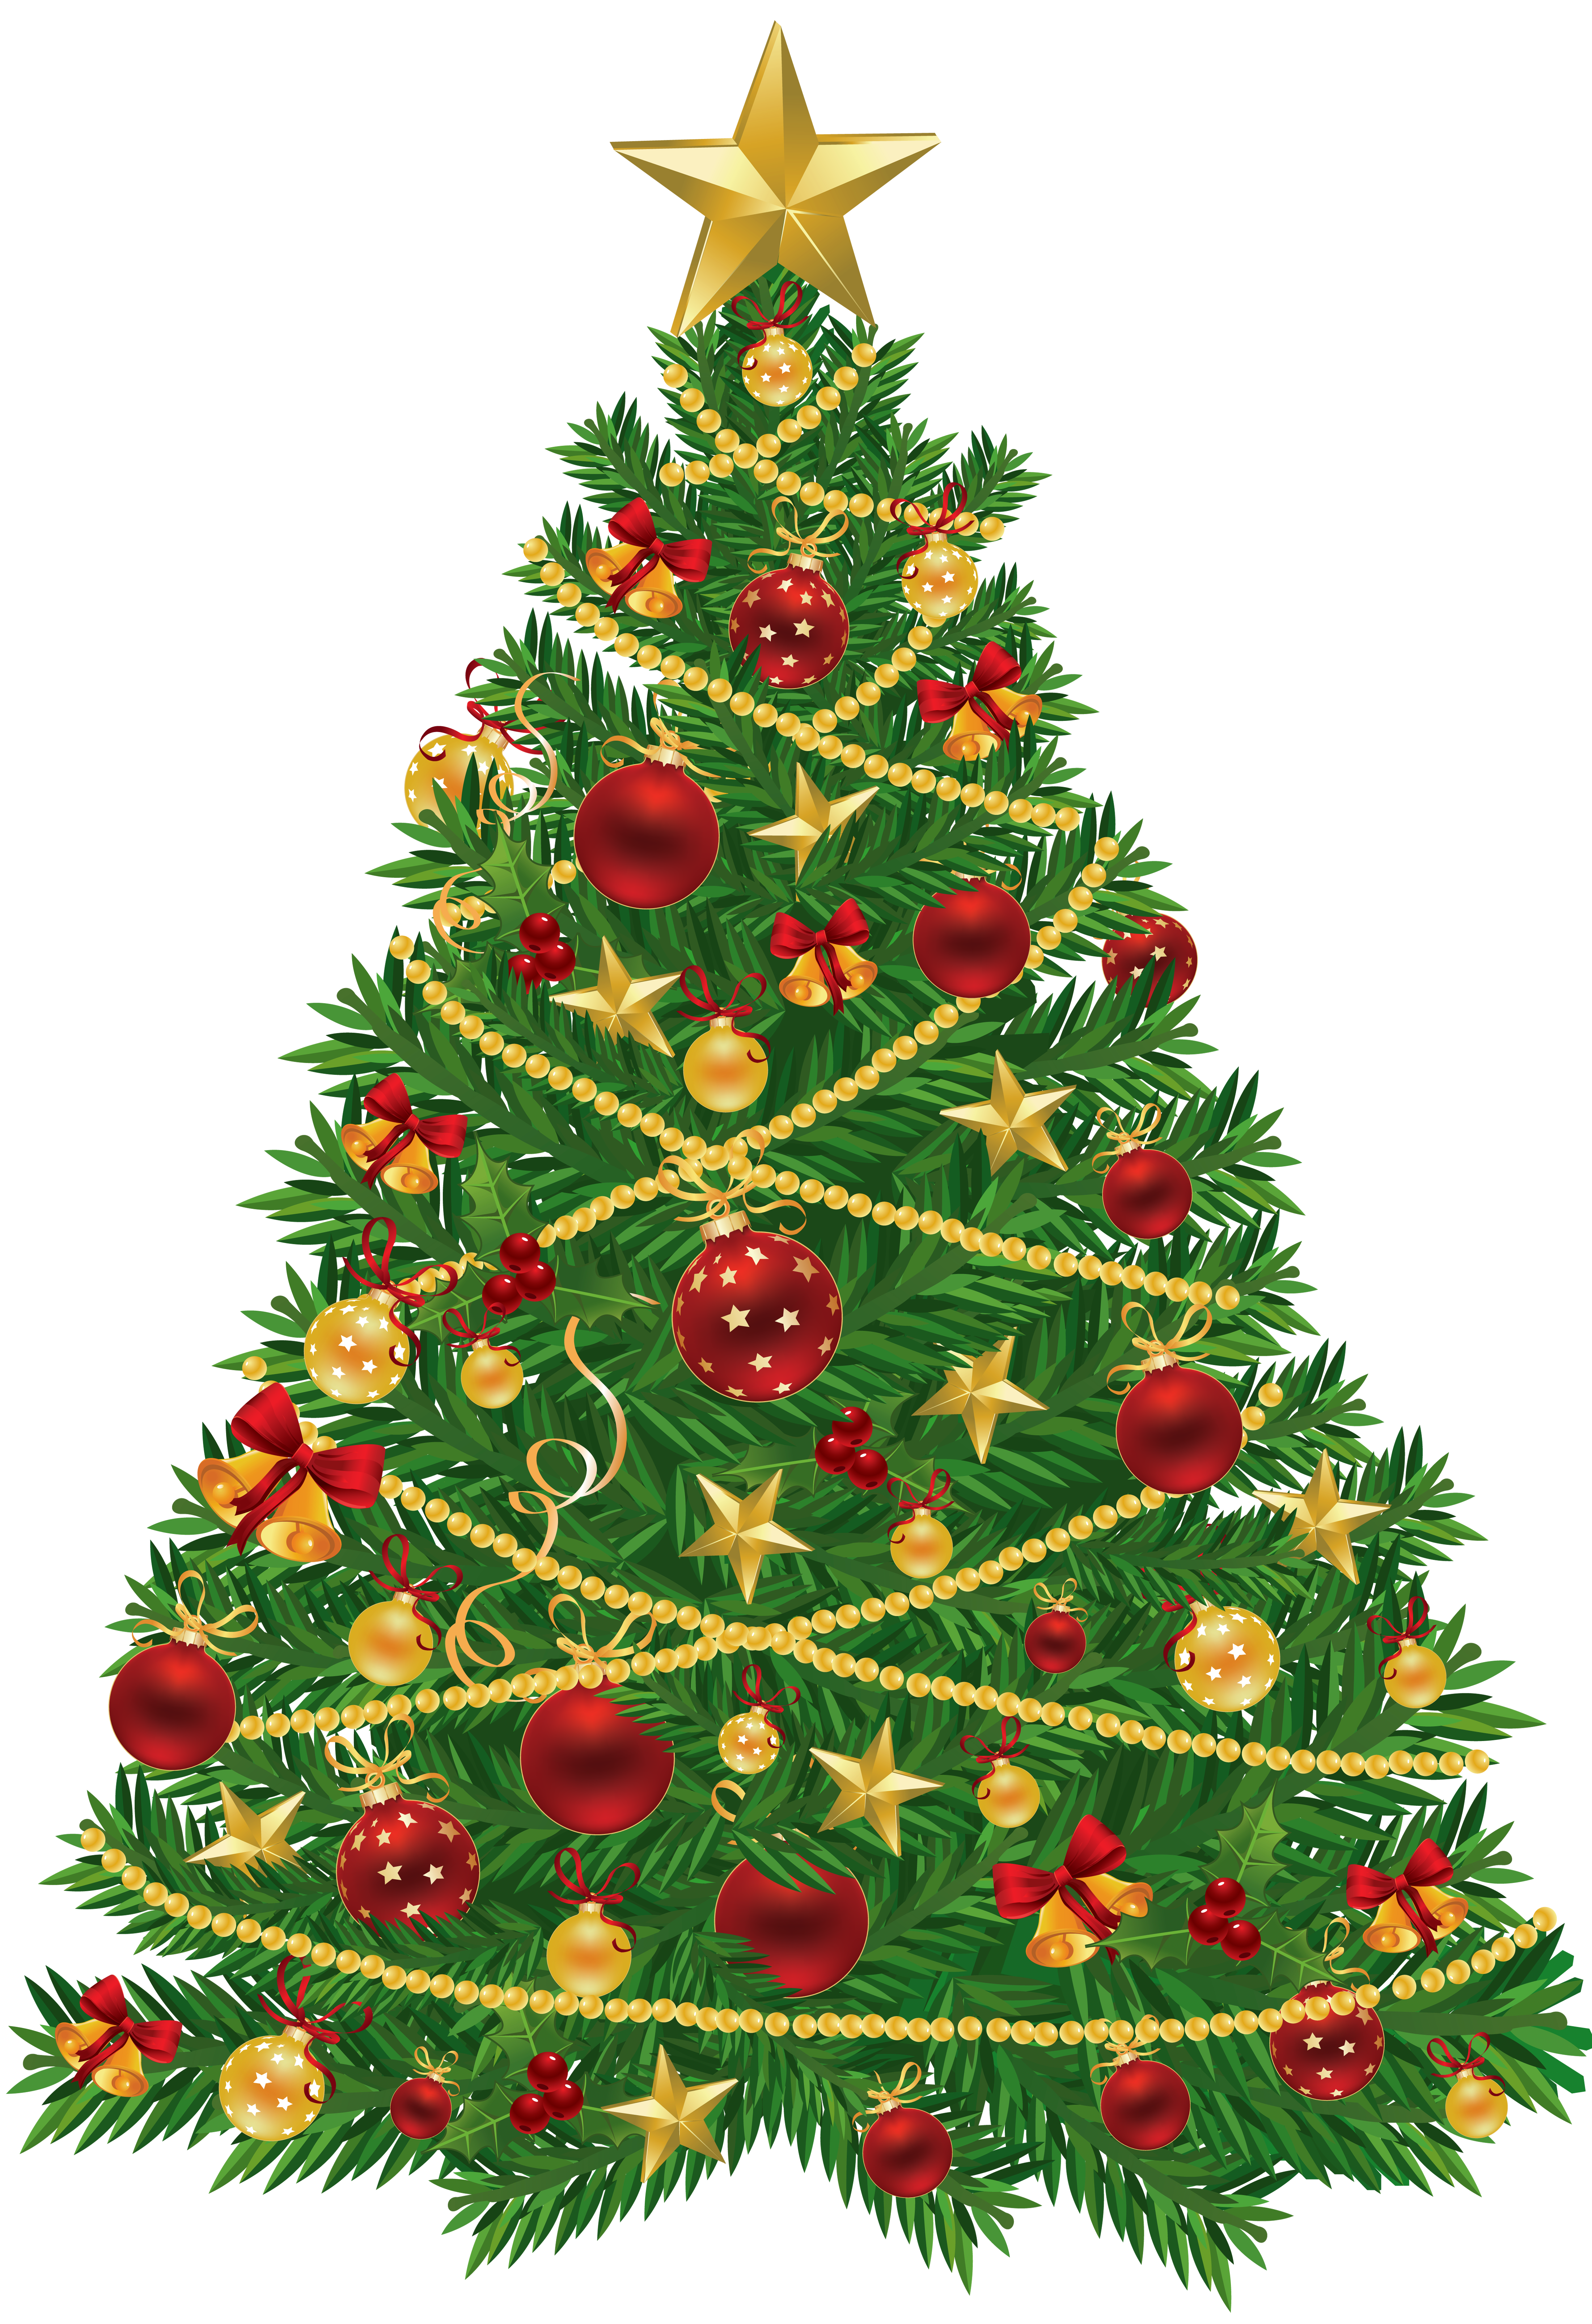 Large Transparent Christmas Tree with Red and Gold Ornaments